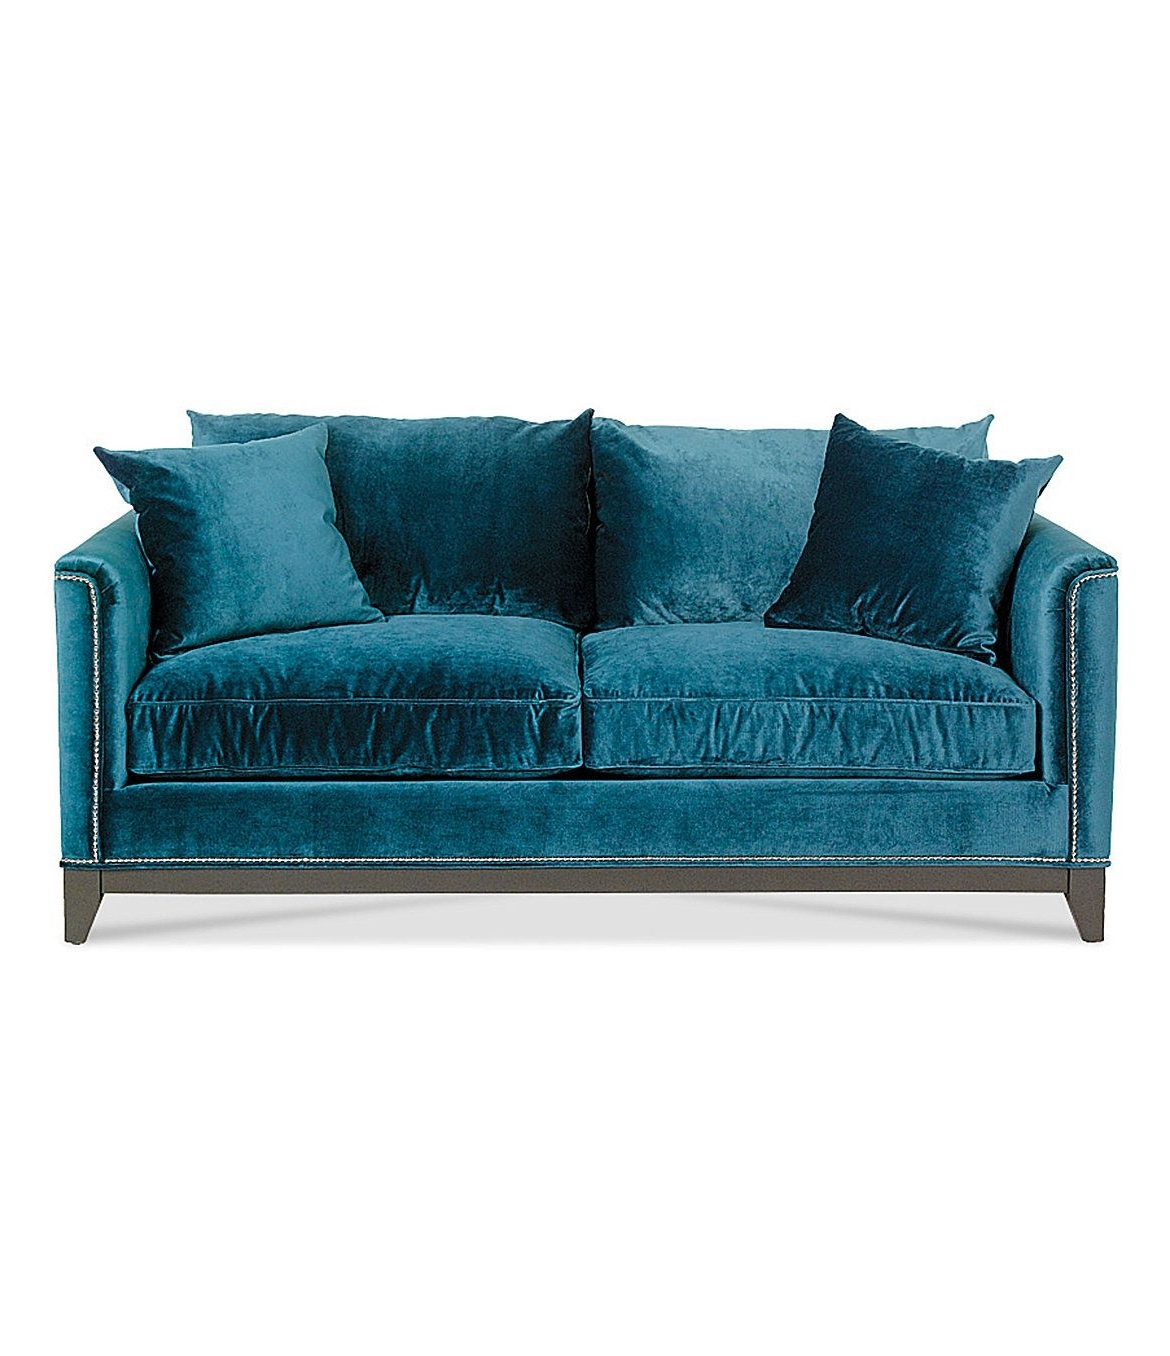 "Jonathan Louis ""mystere"" Sofa From Dillard's $699! This Just Could With Regard To Trendy Dillards Sectional Sofas (View 13 of 20)"